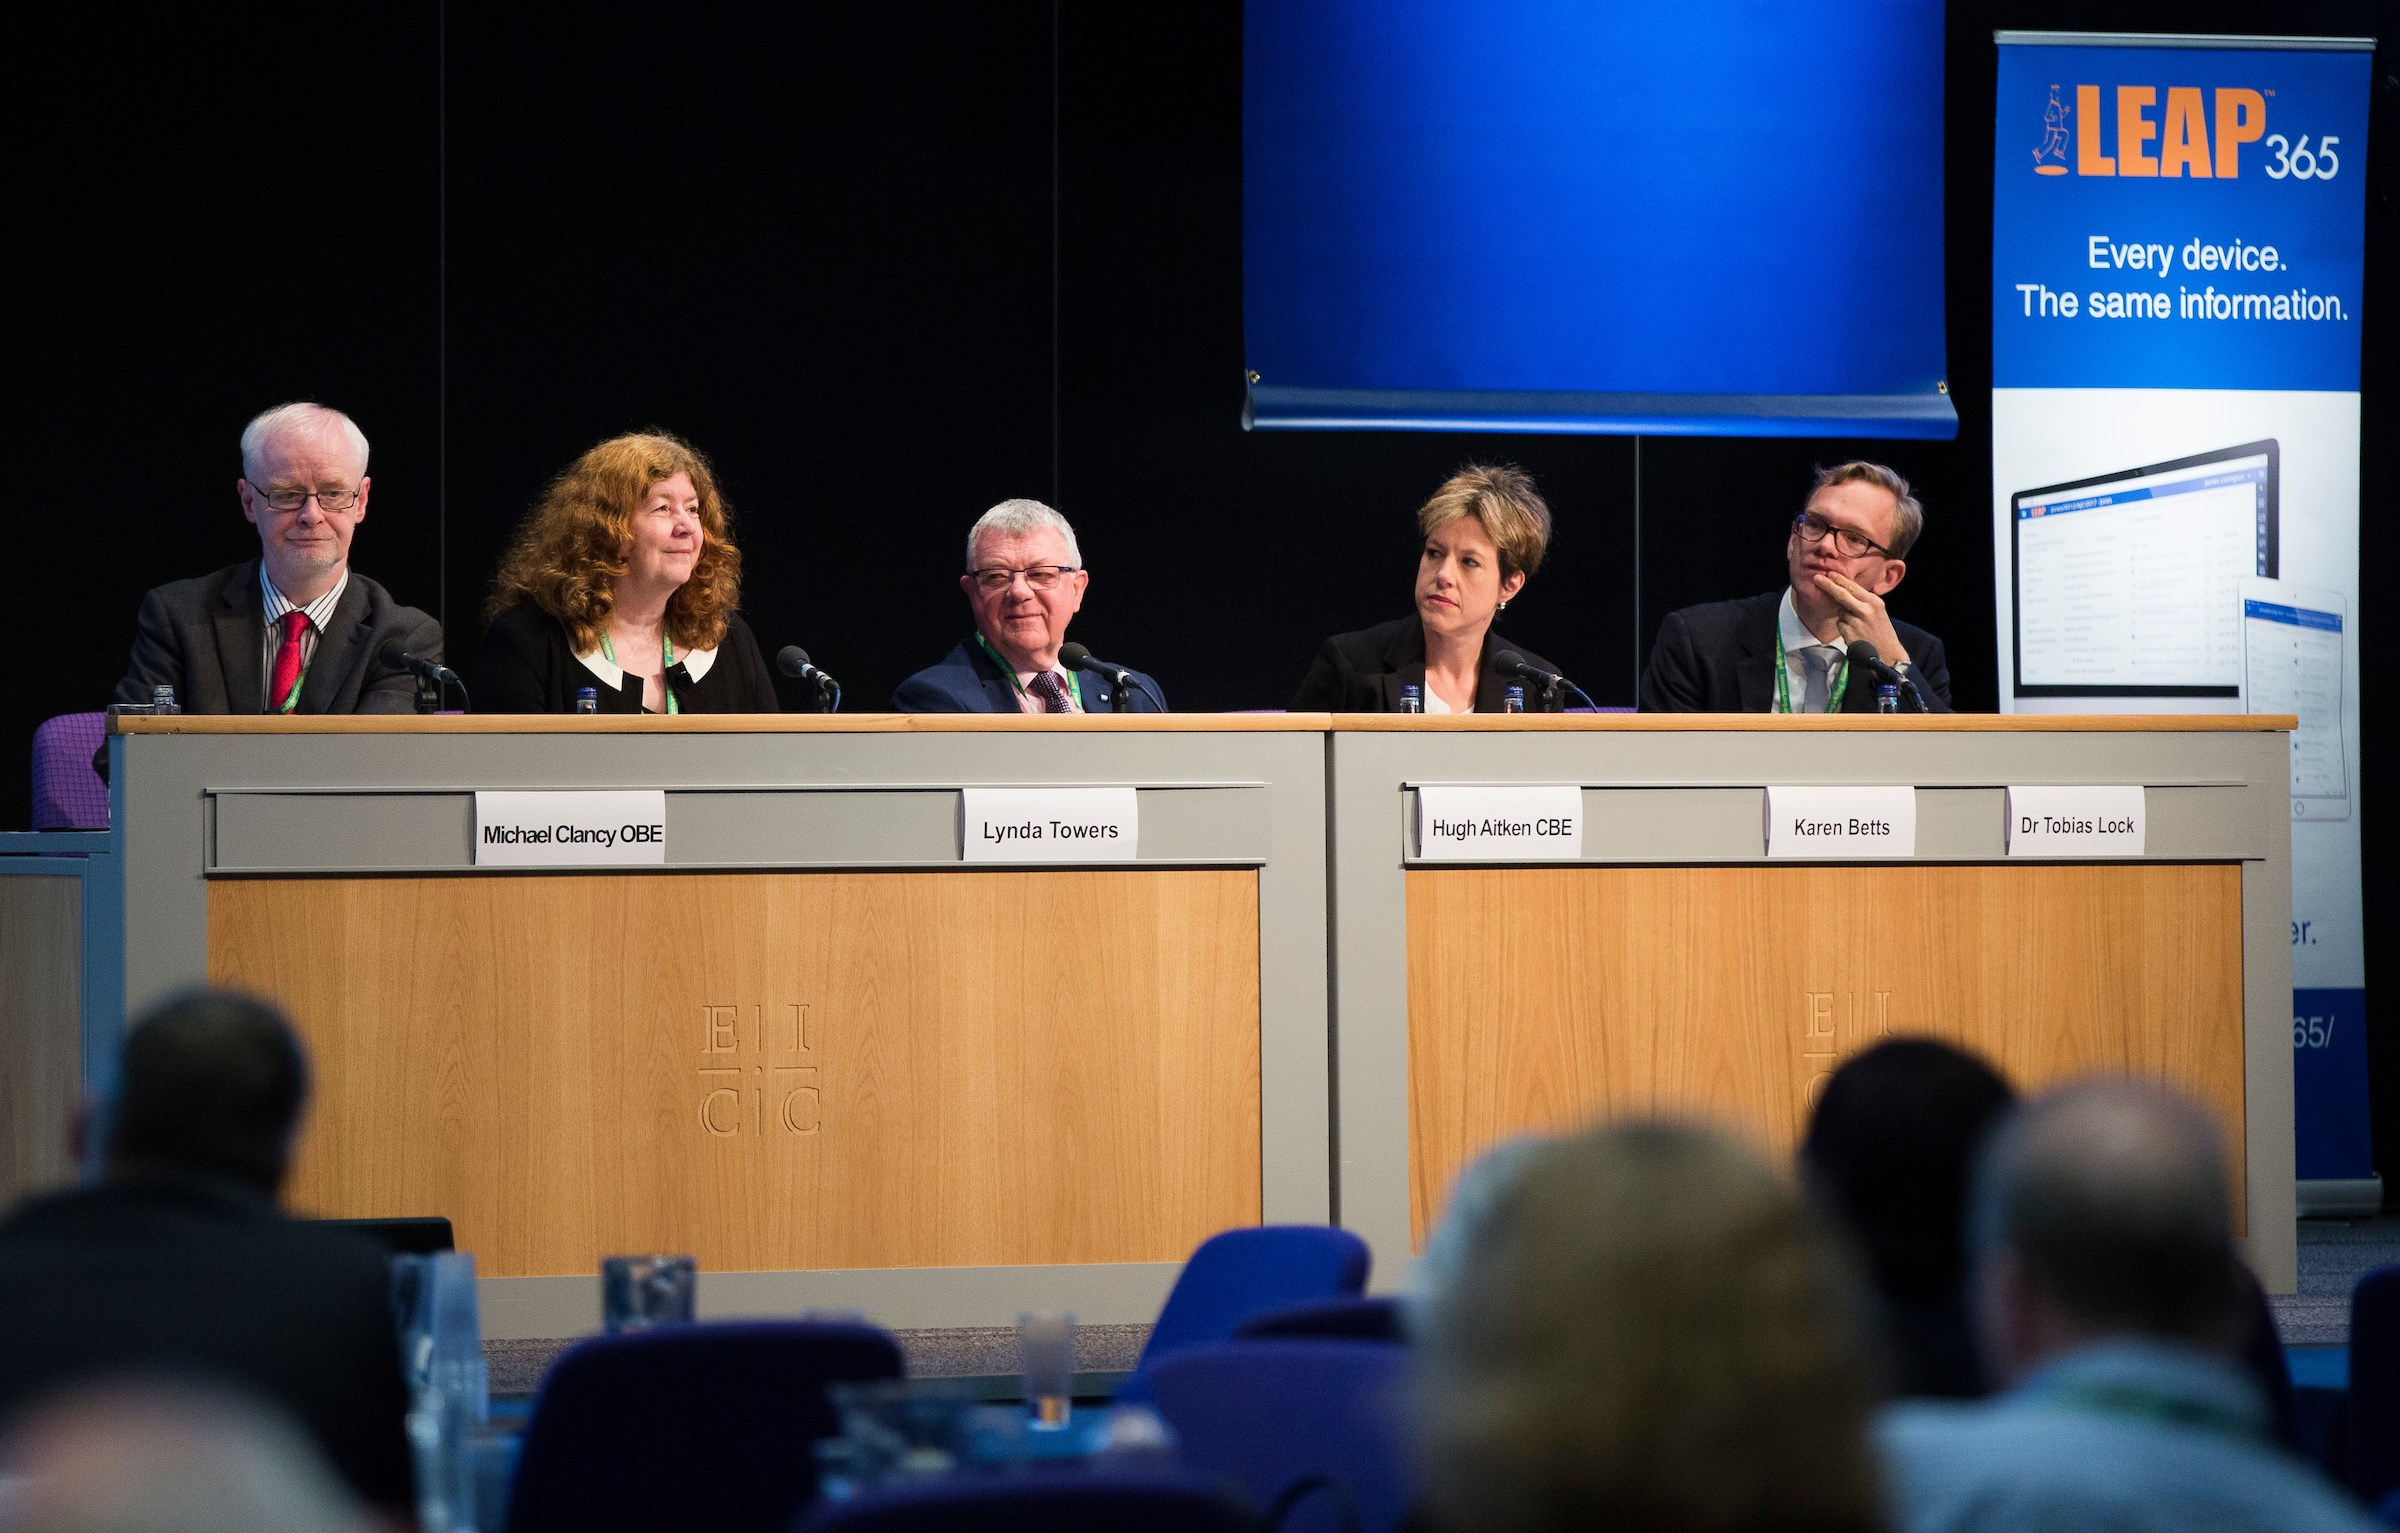 Michael Clancy, Lynda Towers, Hugh Aitken, Karen Betts and Dr Tobias Lock discuss the challenges of Brexit